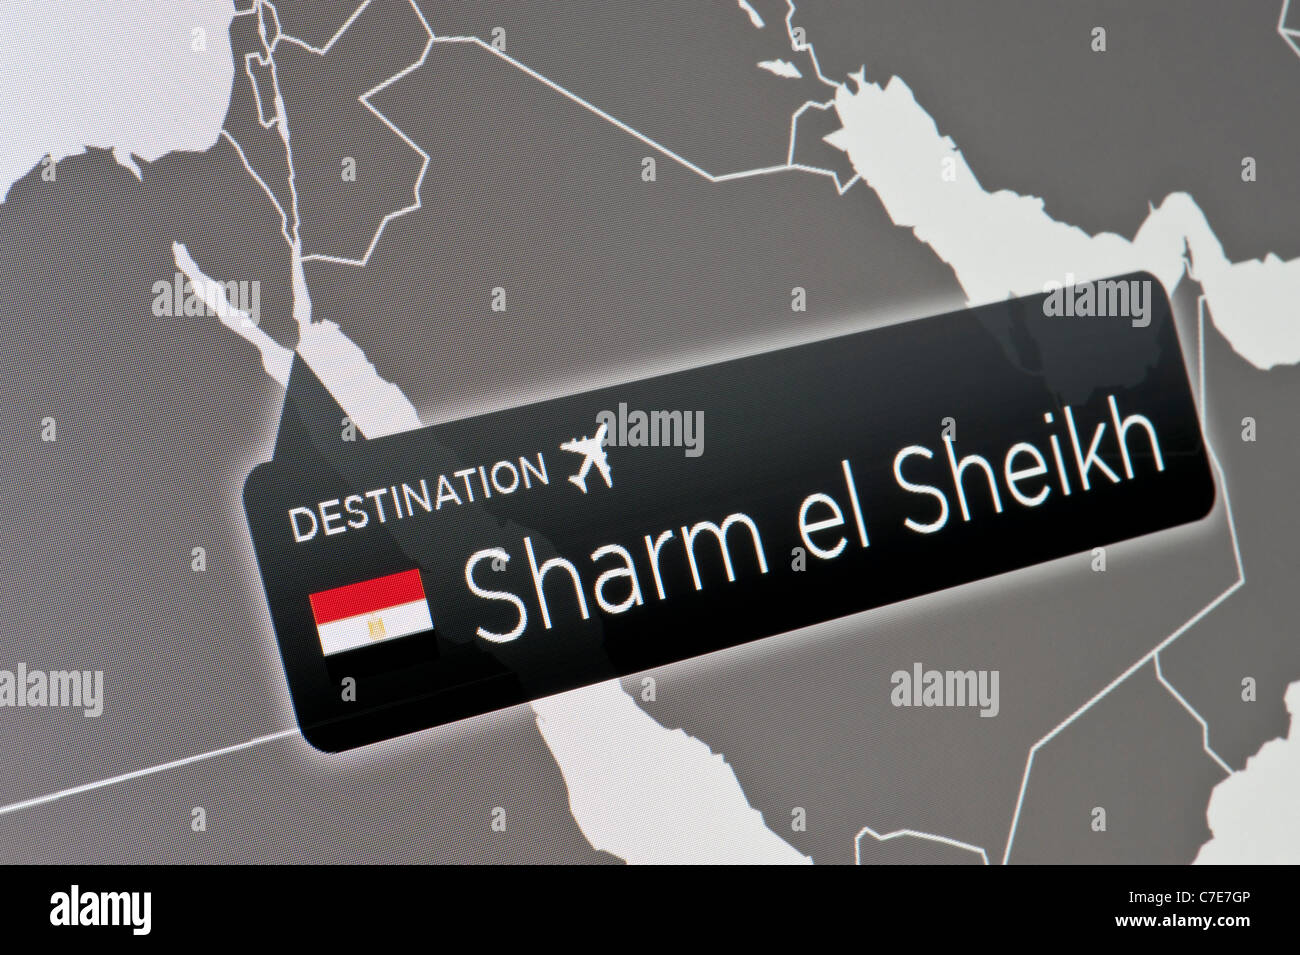 A close-up of a computer display indicating the location of Sharm el Sheikh International Airport, Egypt. - Stock Image